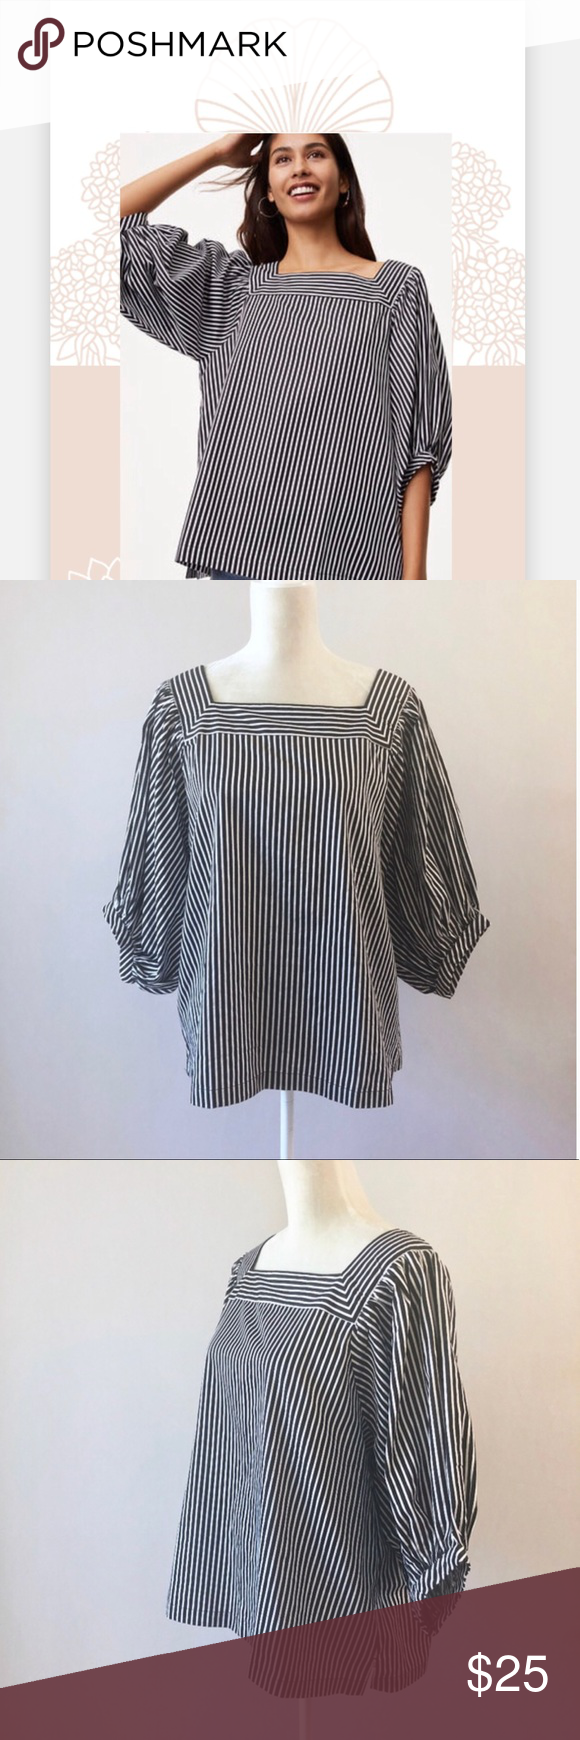 52ae0ddafa2d8b Loft Square Neck Striped Balloon Sleeve Blouse Gently Pre-Owned top from  Ann Taylor LOFT. Lightweight 100% cotton. Black and white stripes.